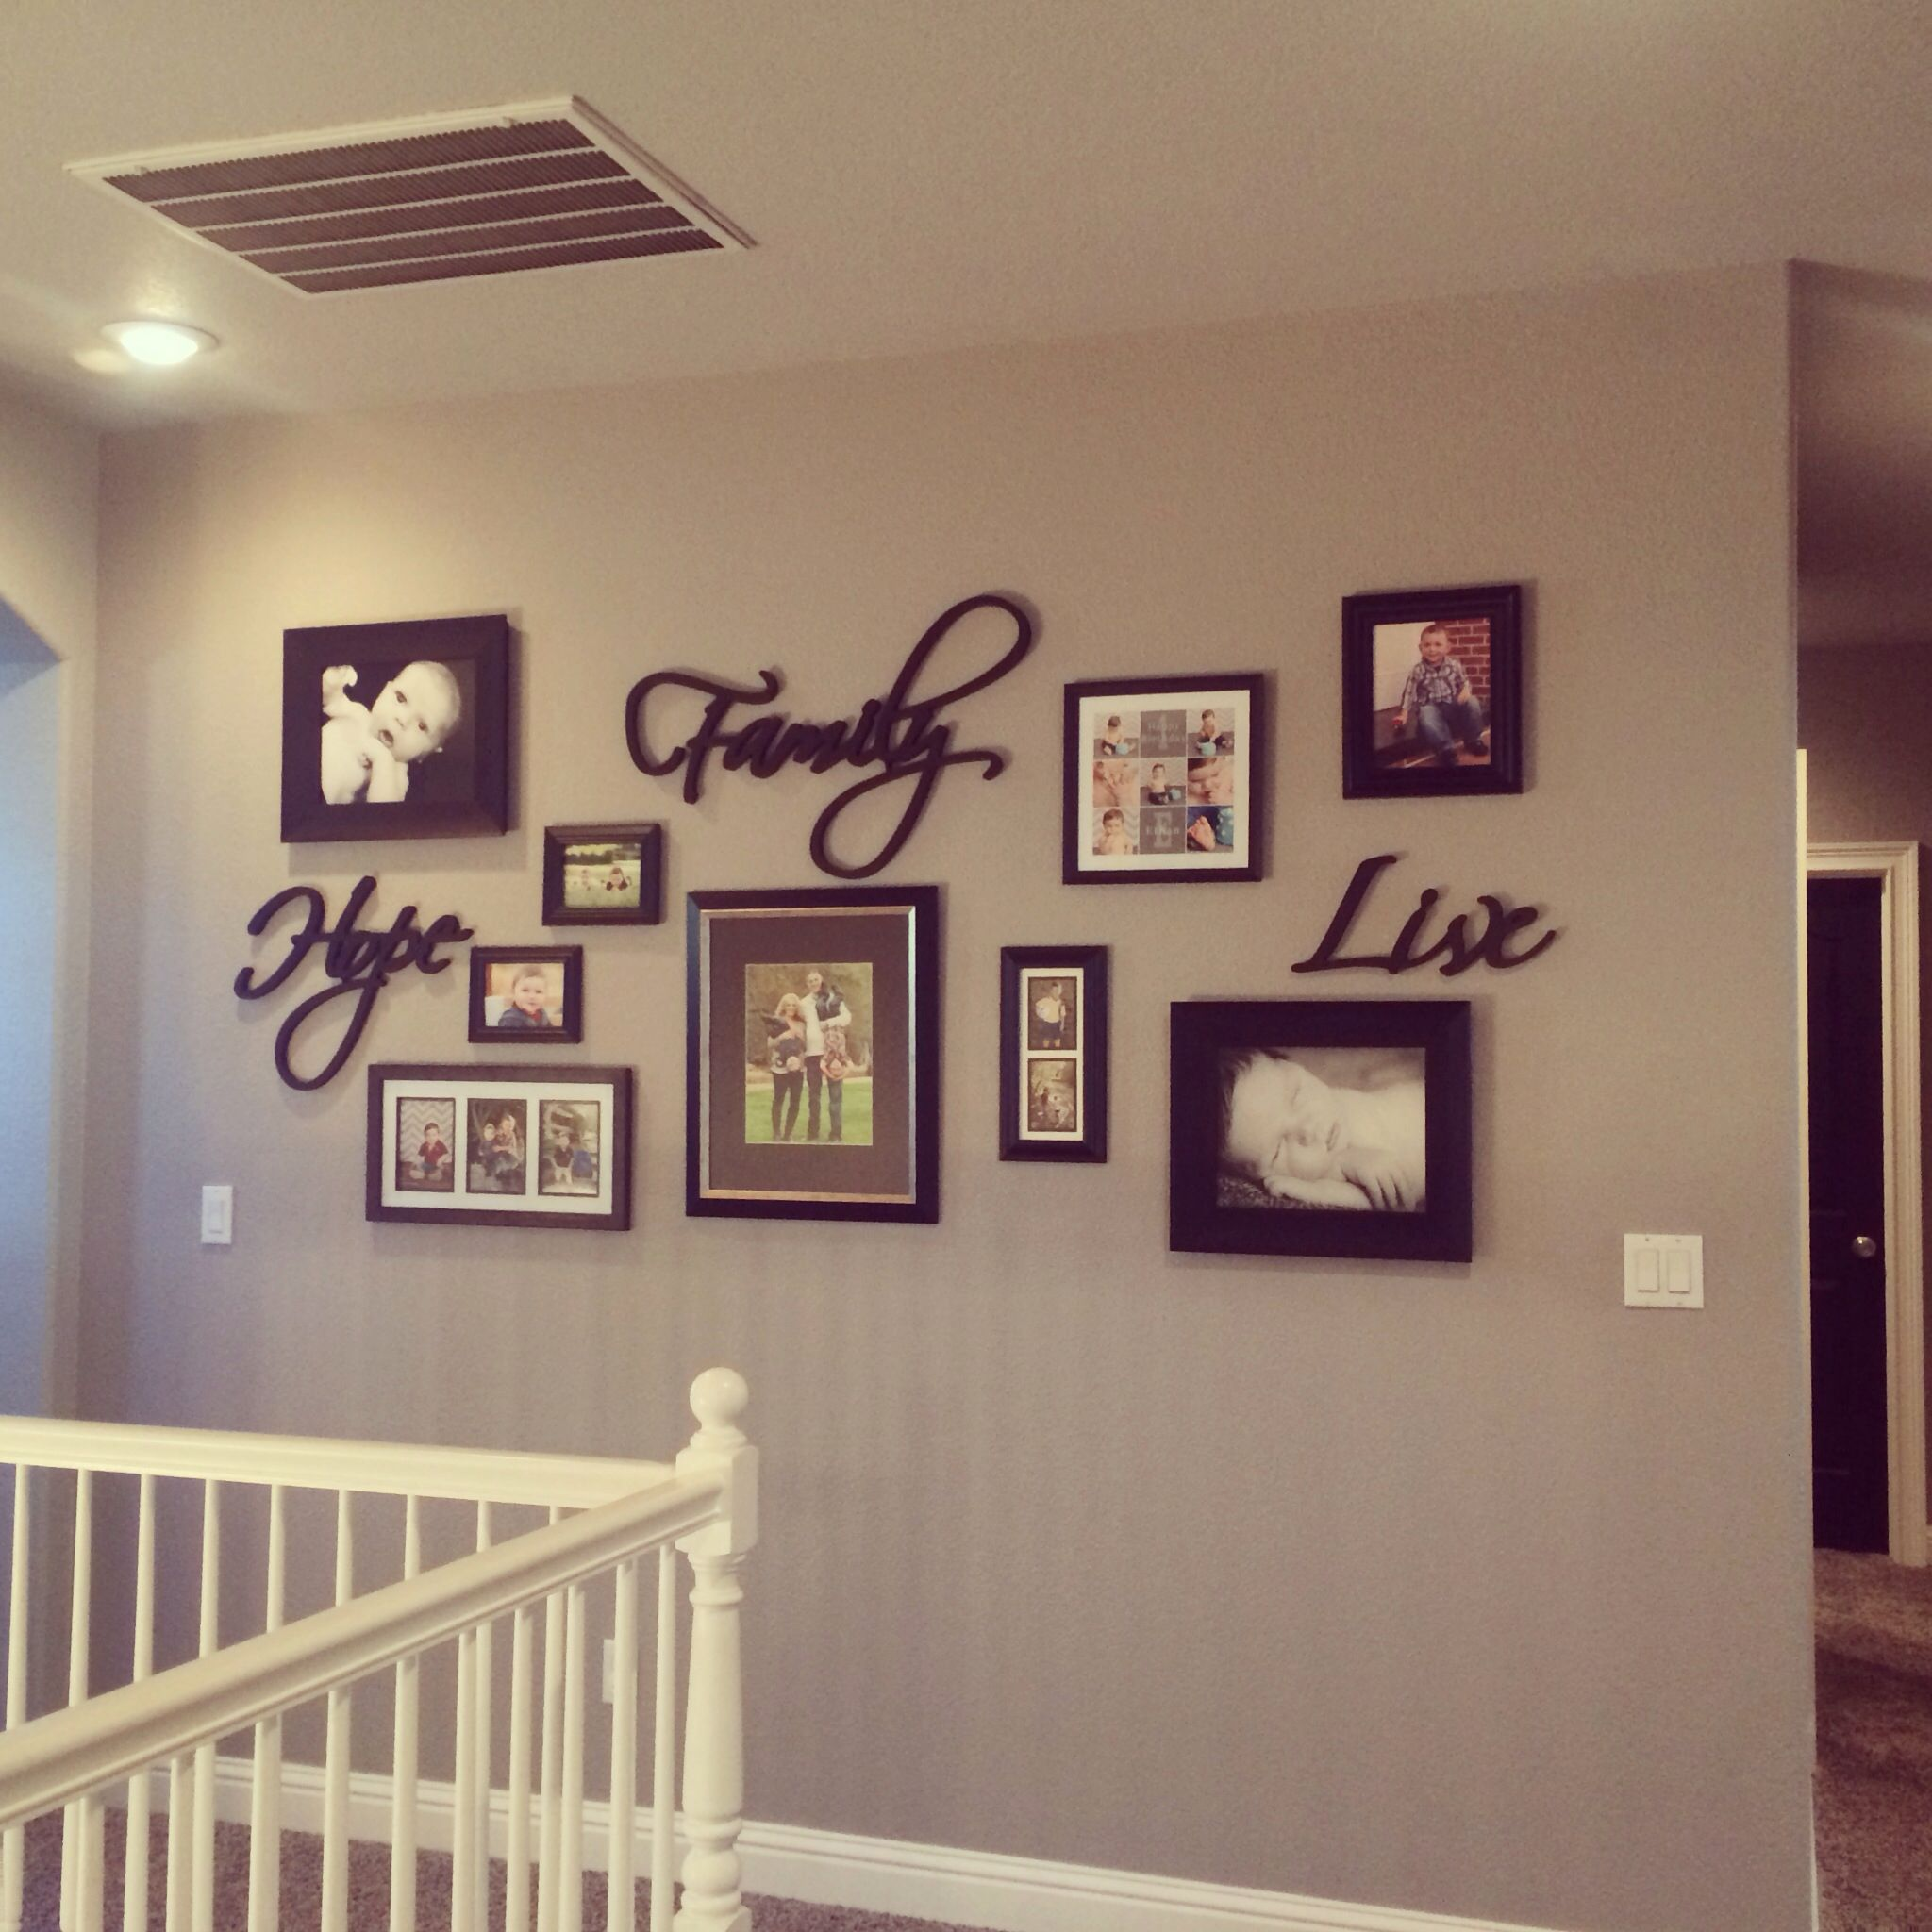 30 Wall Decor Ideas For Your Home: Gallery Wall, Greige Walls, Black Doors, Home Decor